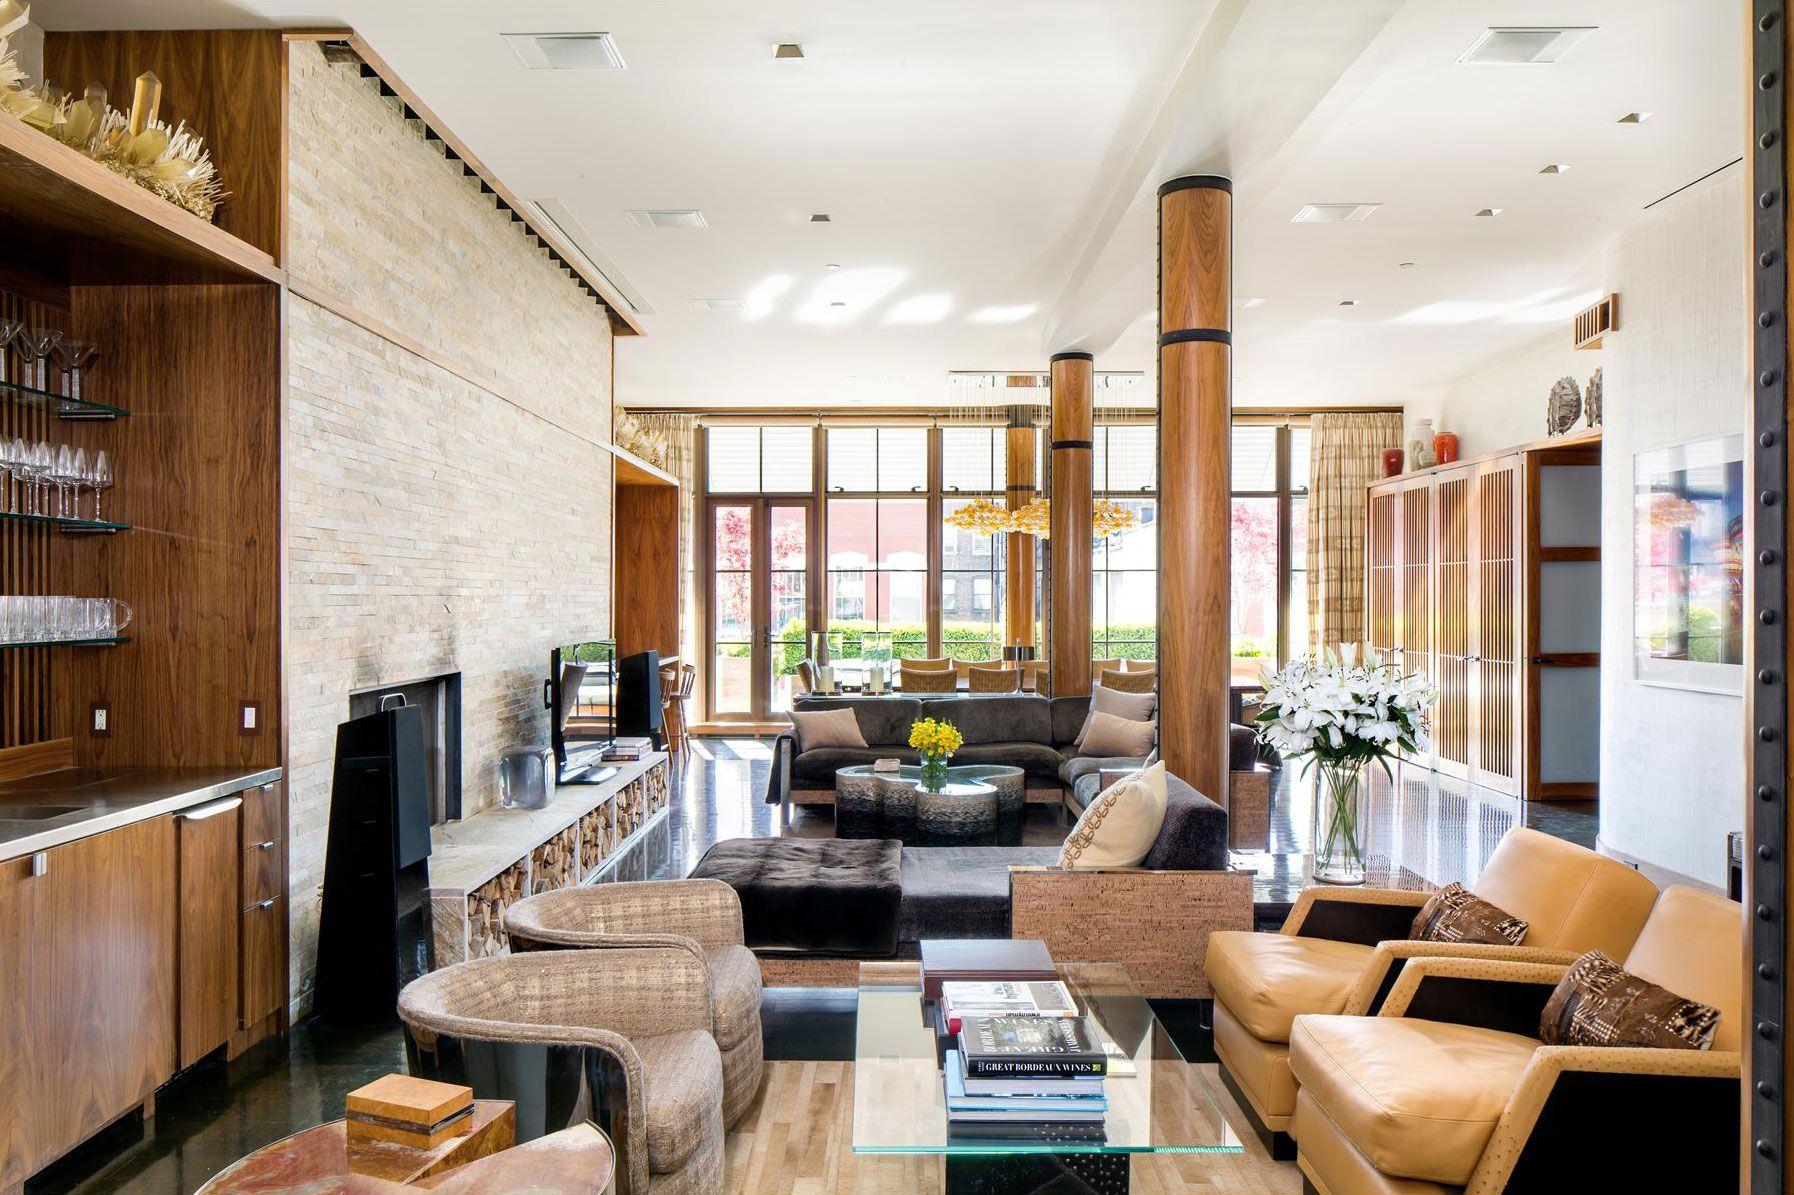 Penthouse B Is A Magnificent Apartment, Part Of The Soho